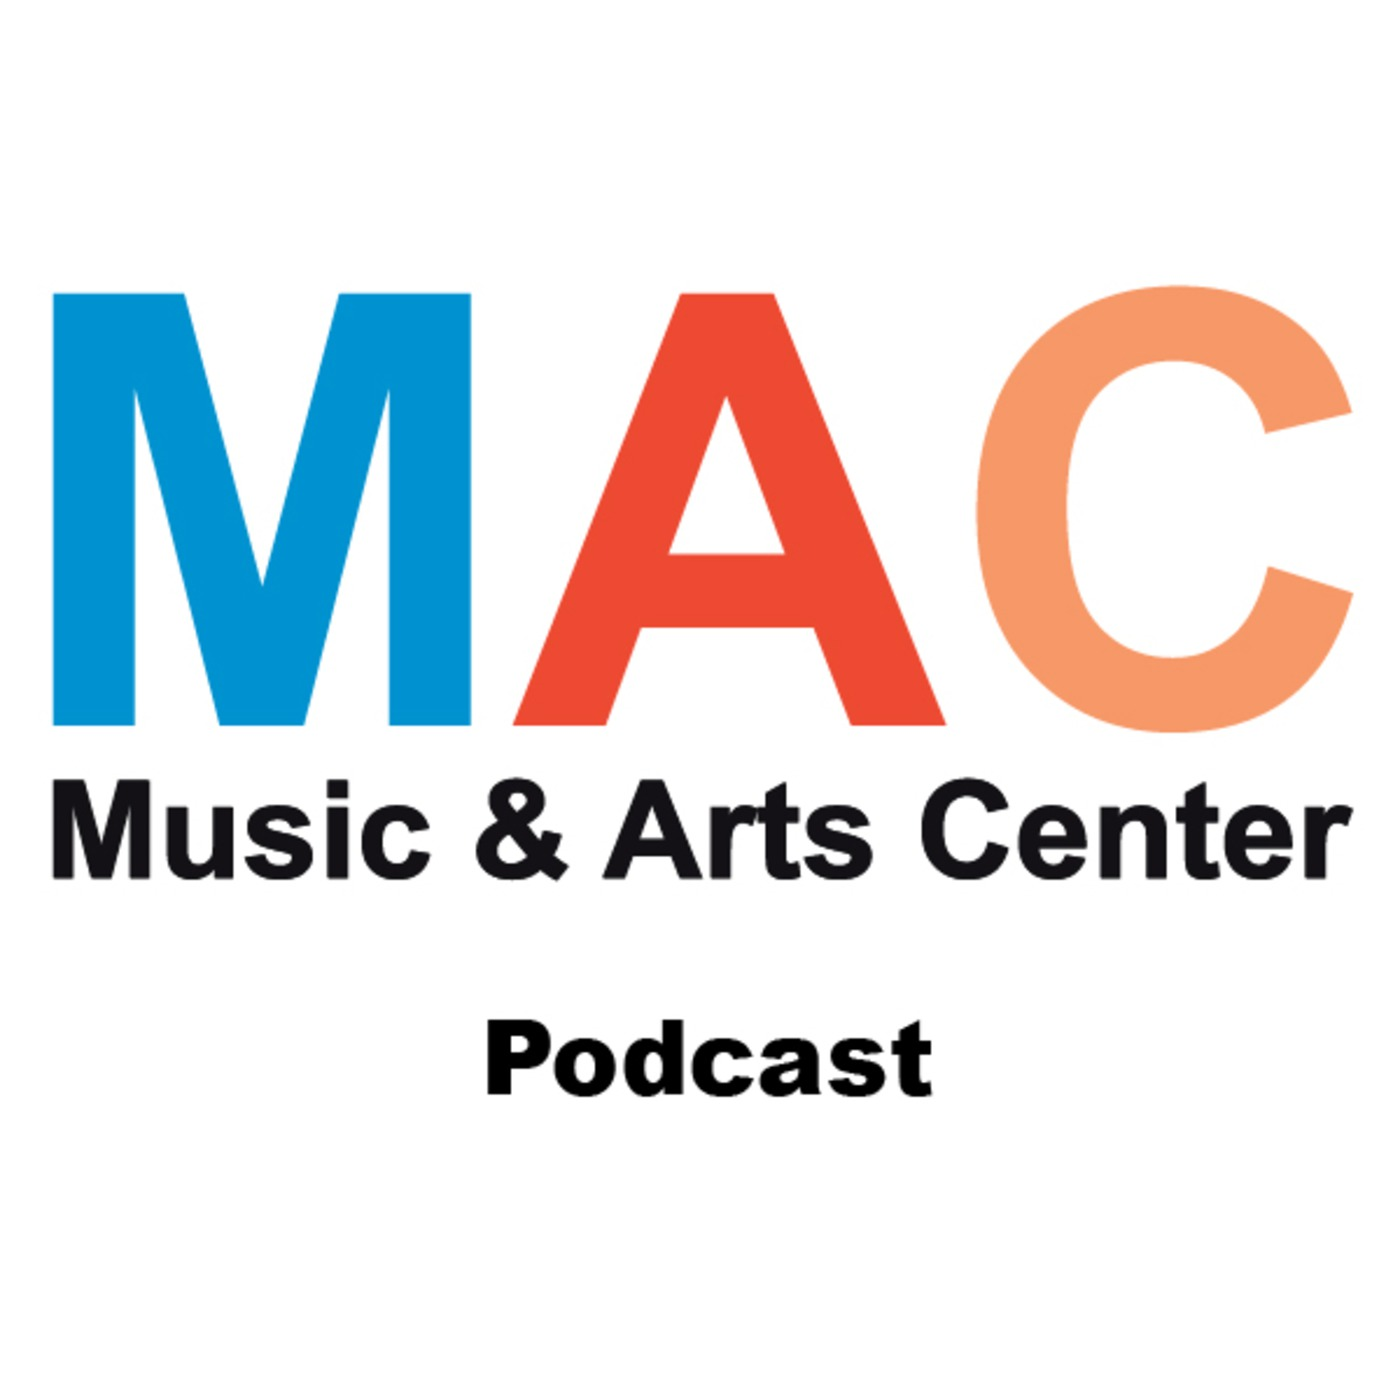 Music & Arts Center Podcast